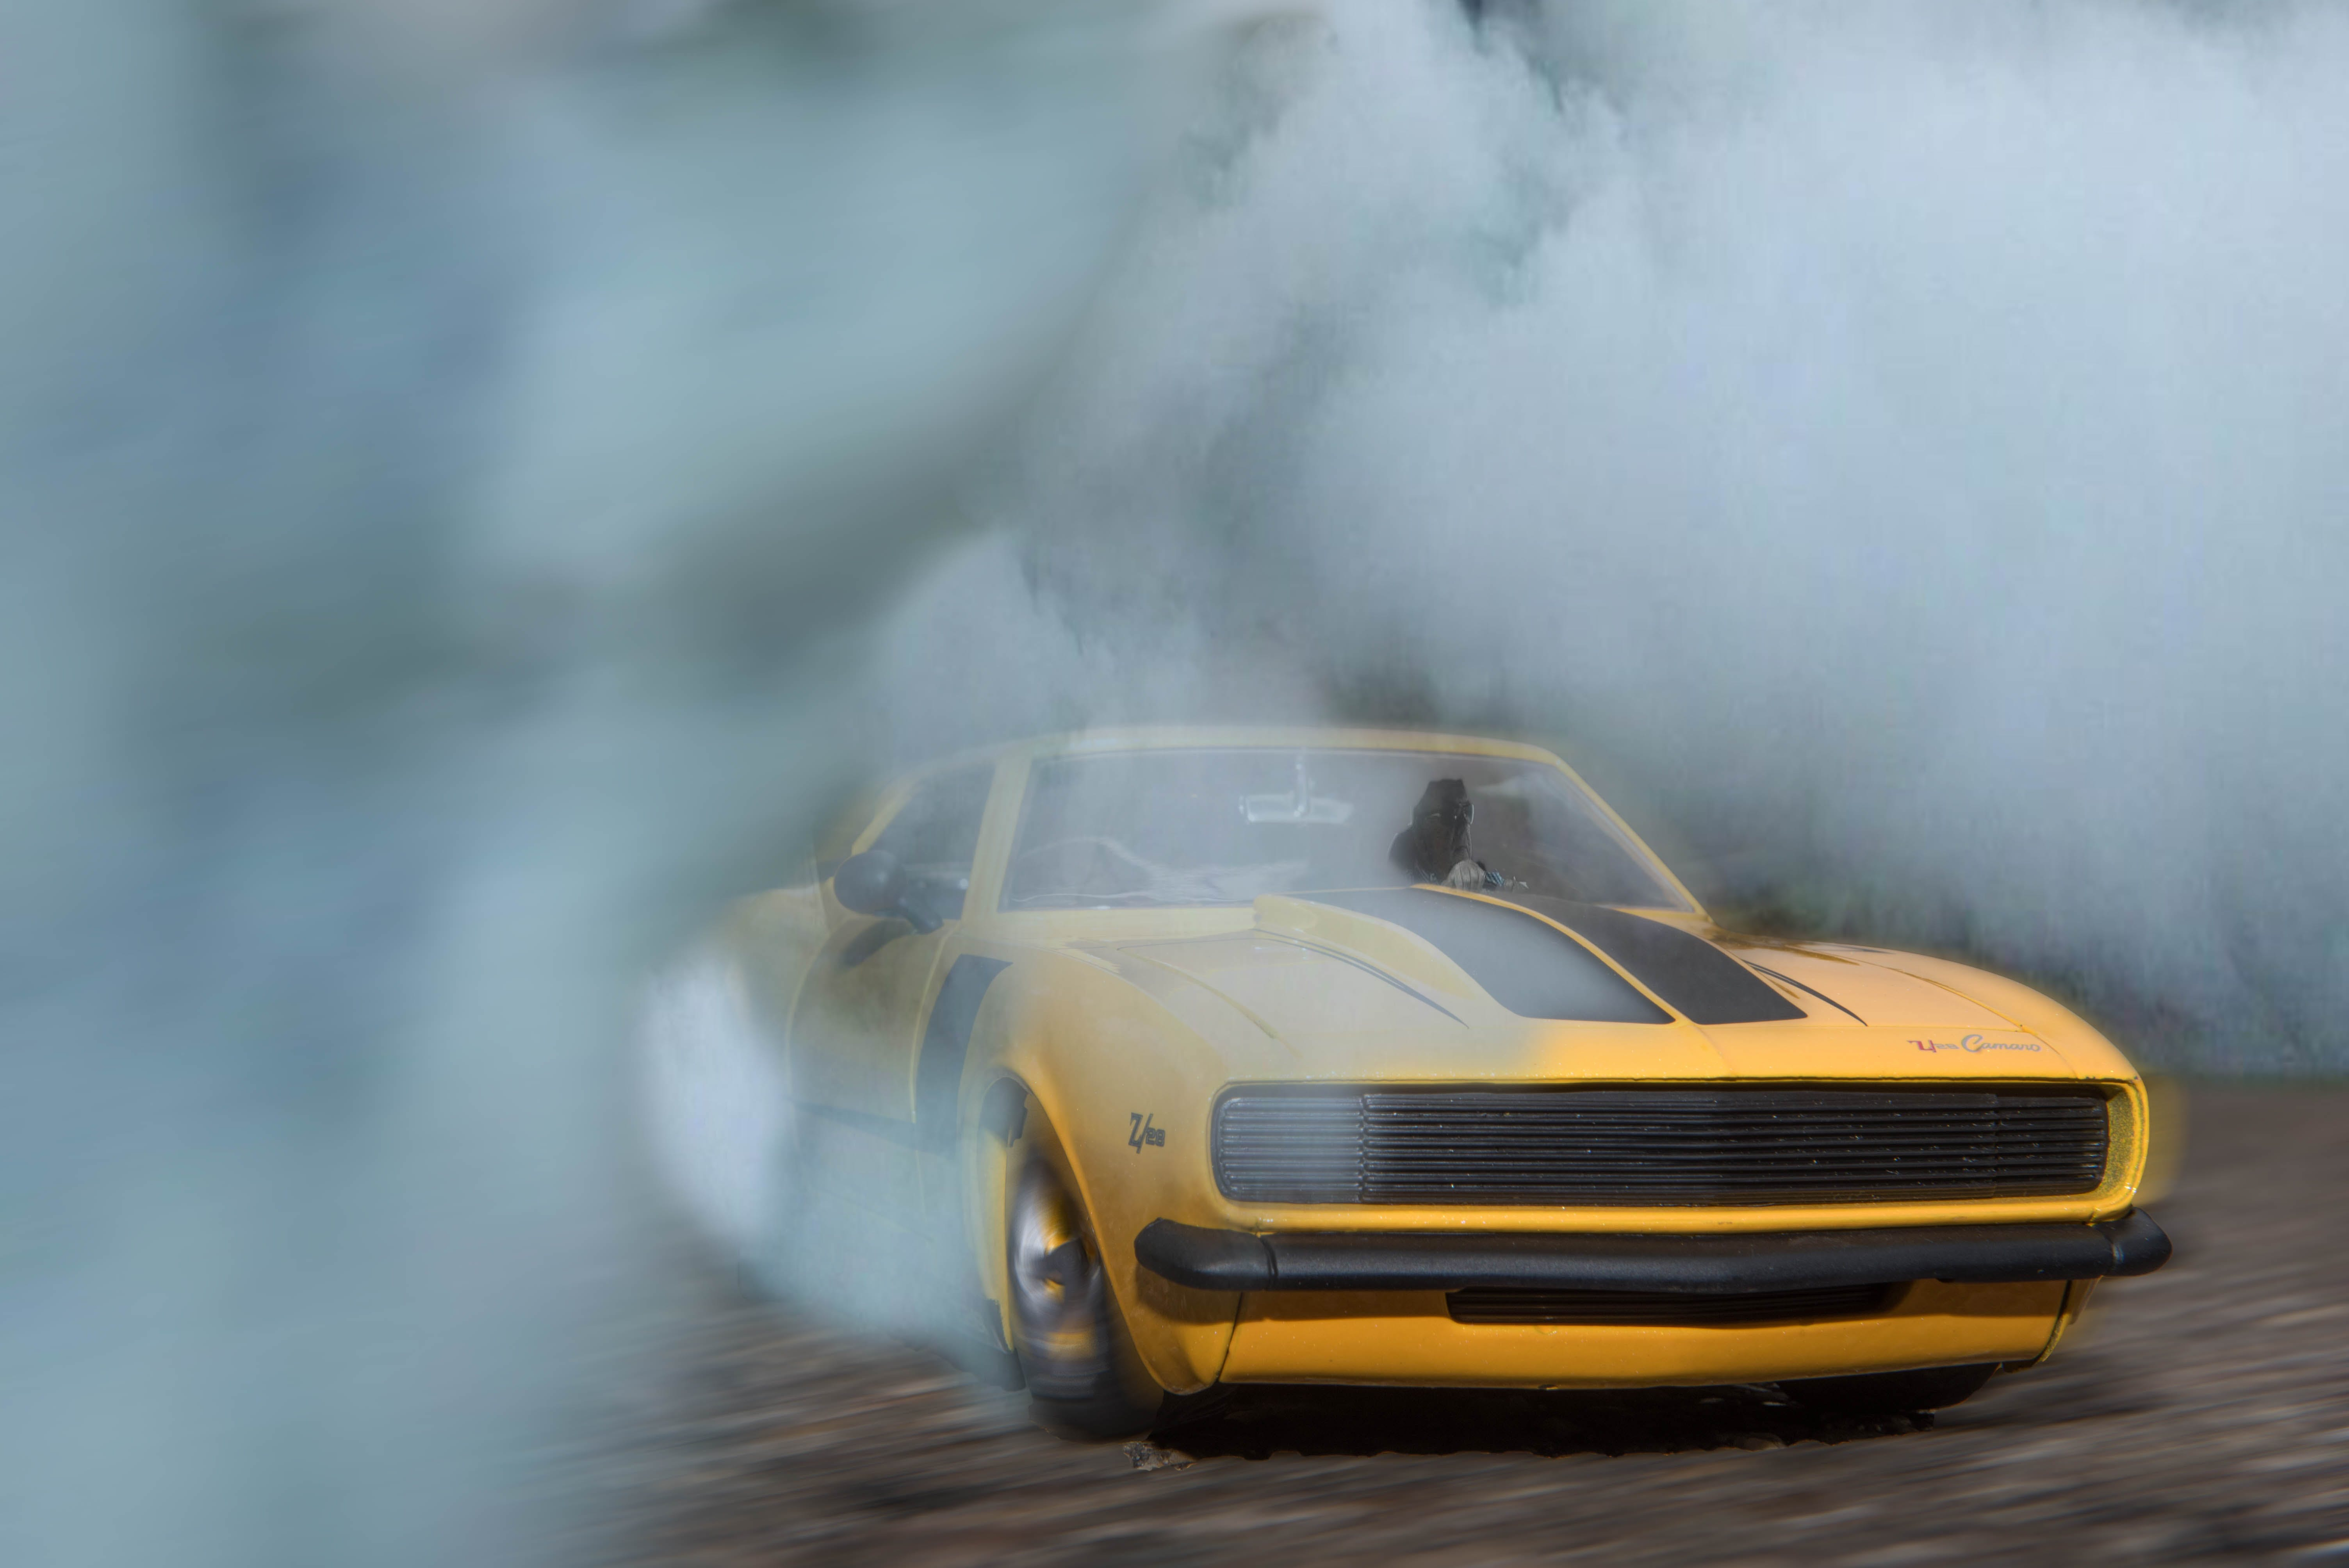 Classic Yellow And Black Sports Car Drifting On Road With Smoke